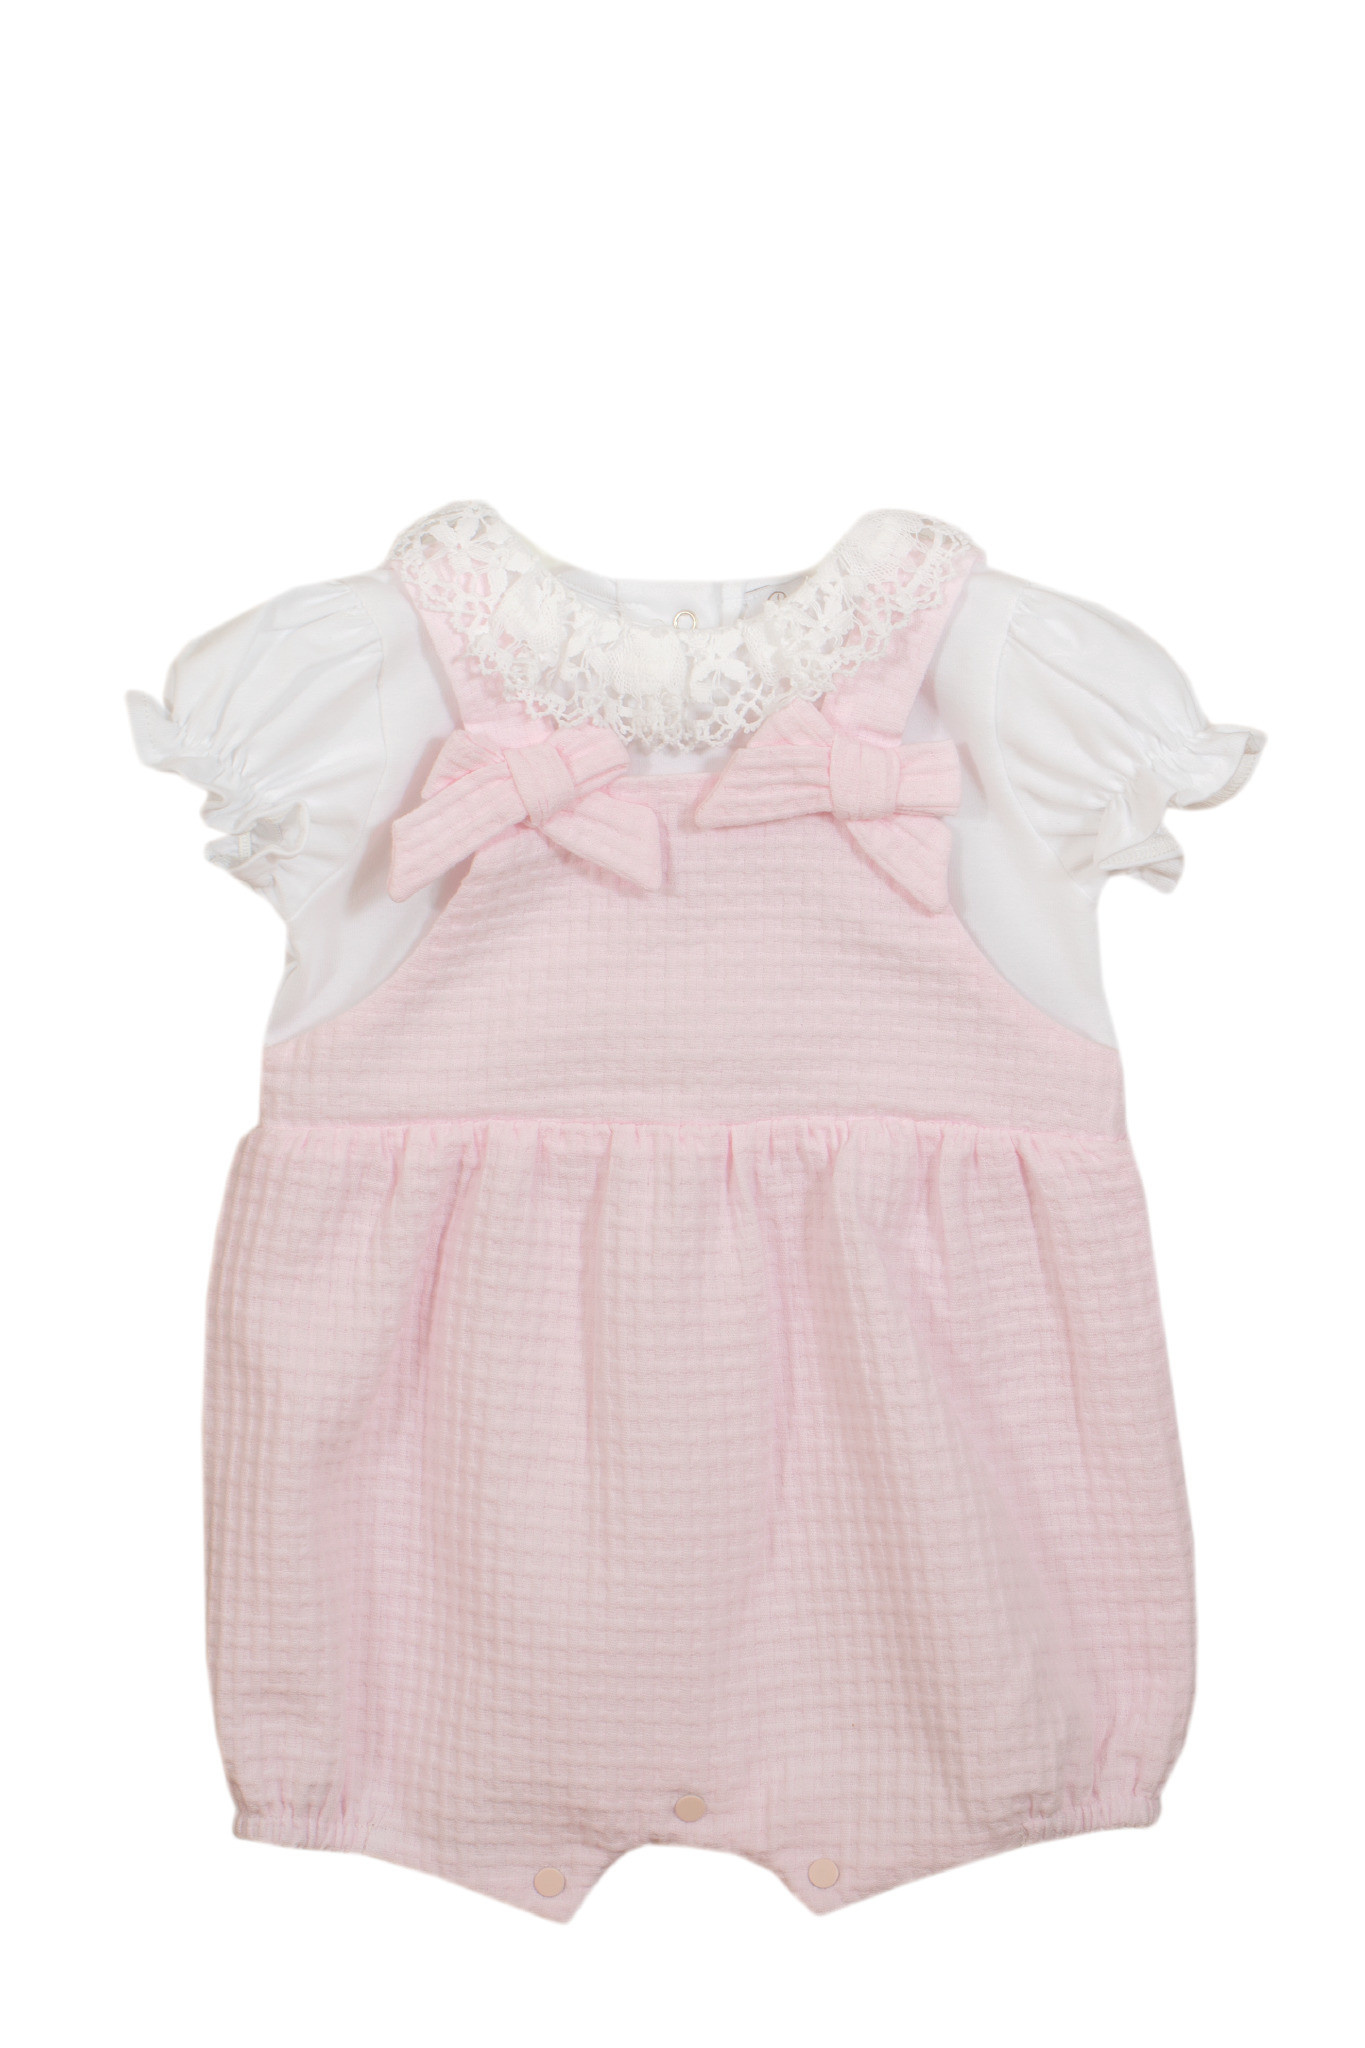 Patachou Patachou Baby 045 Pink & White Romper With Two Bows